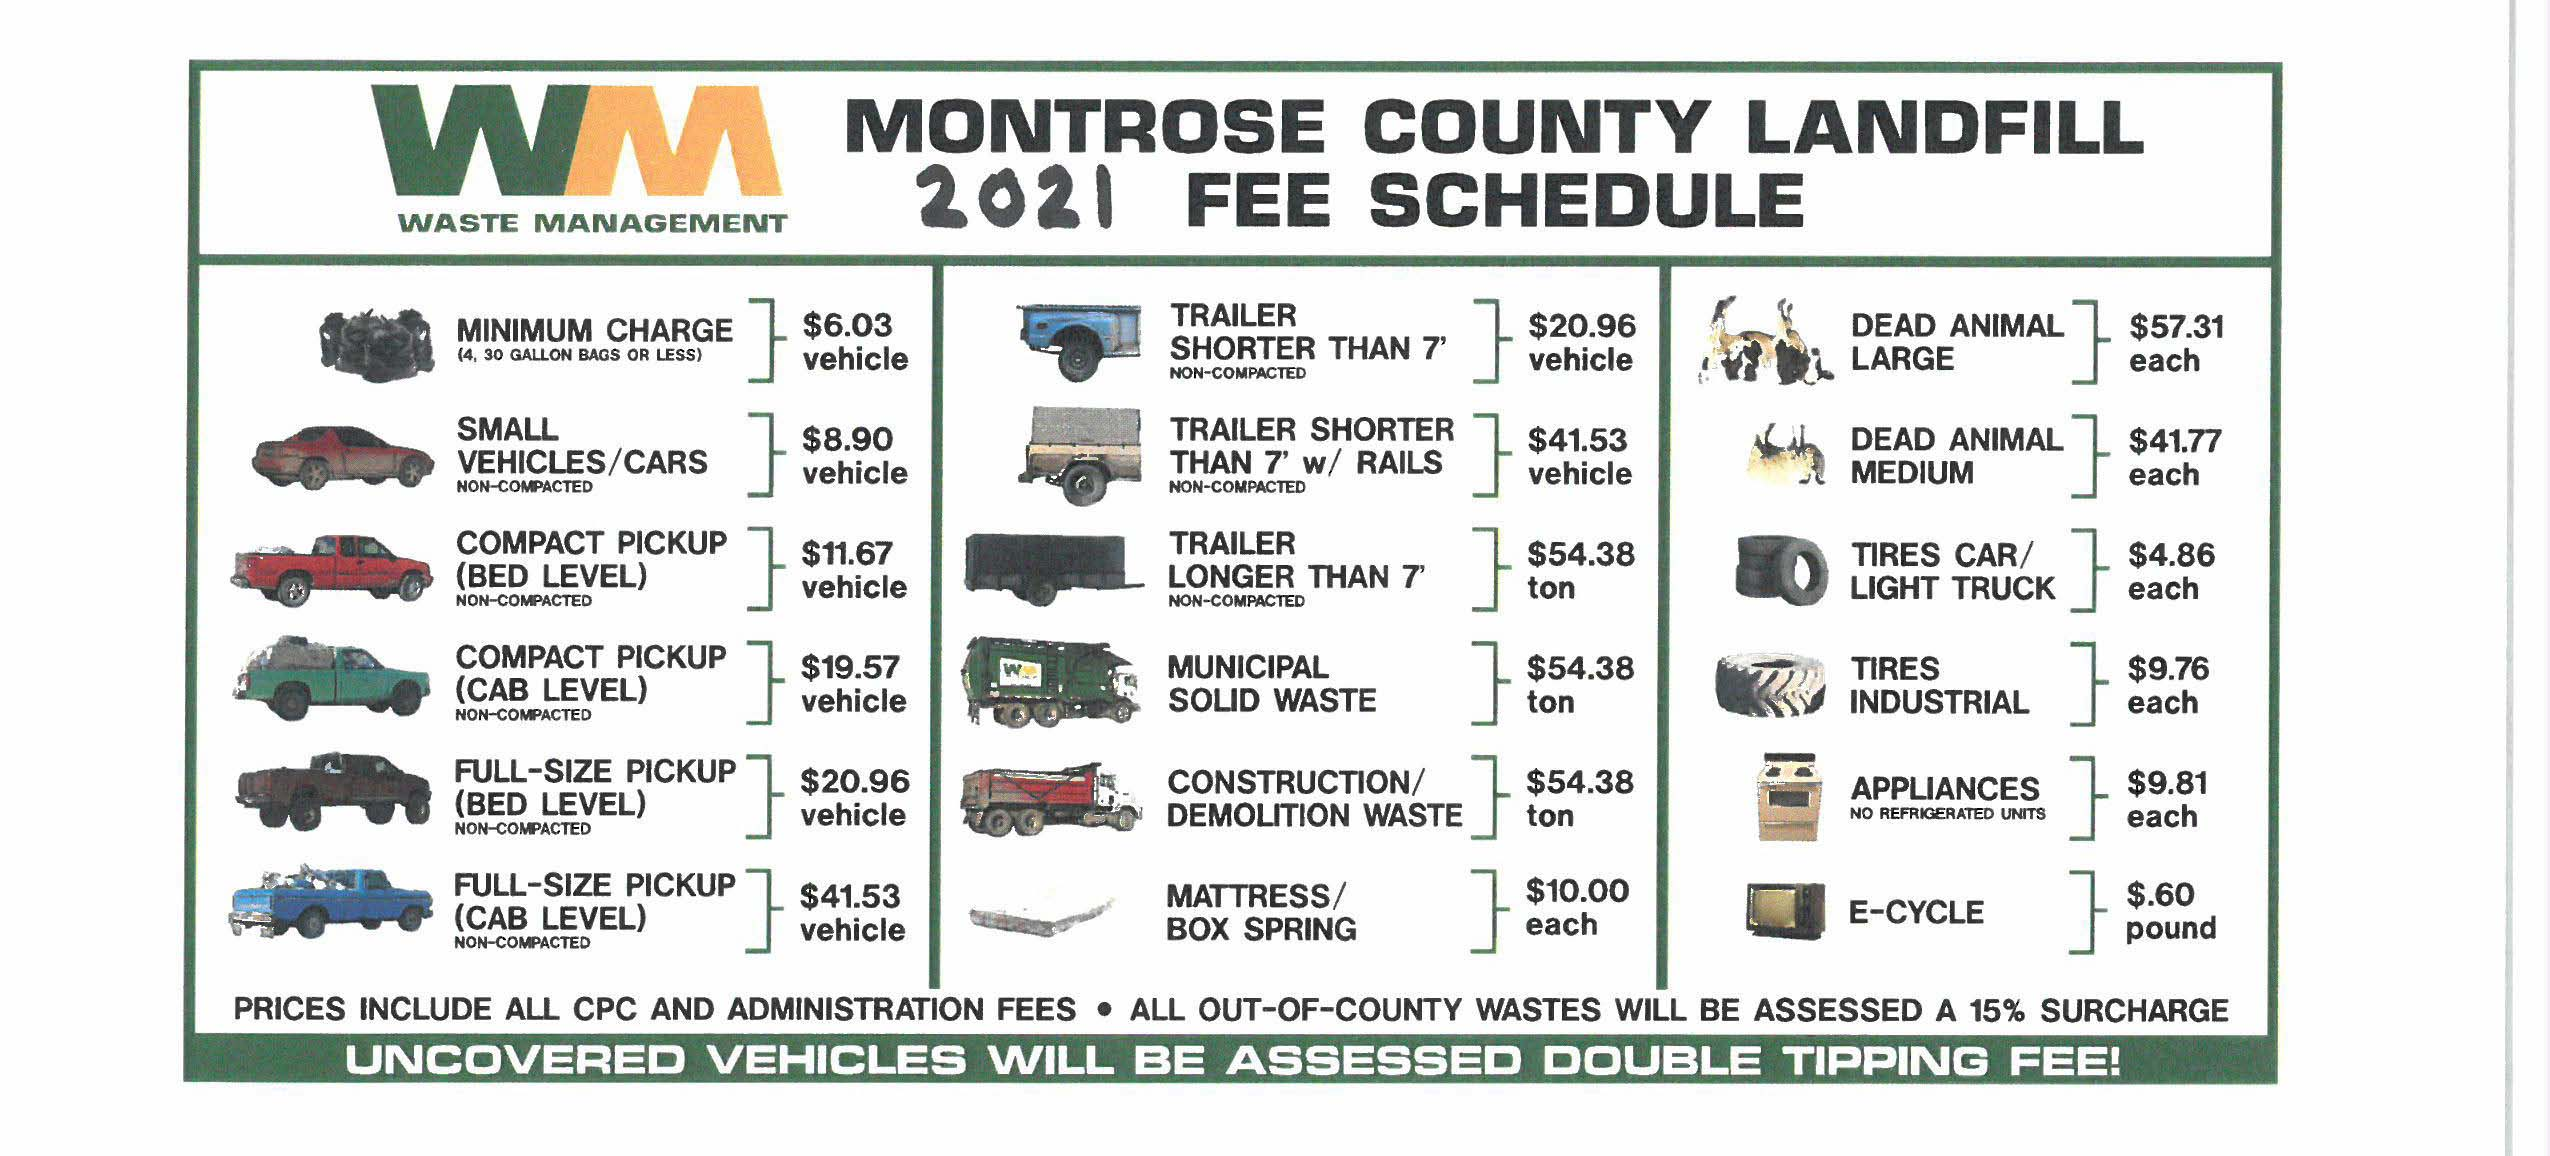 2021 Landfill Fee Schedule